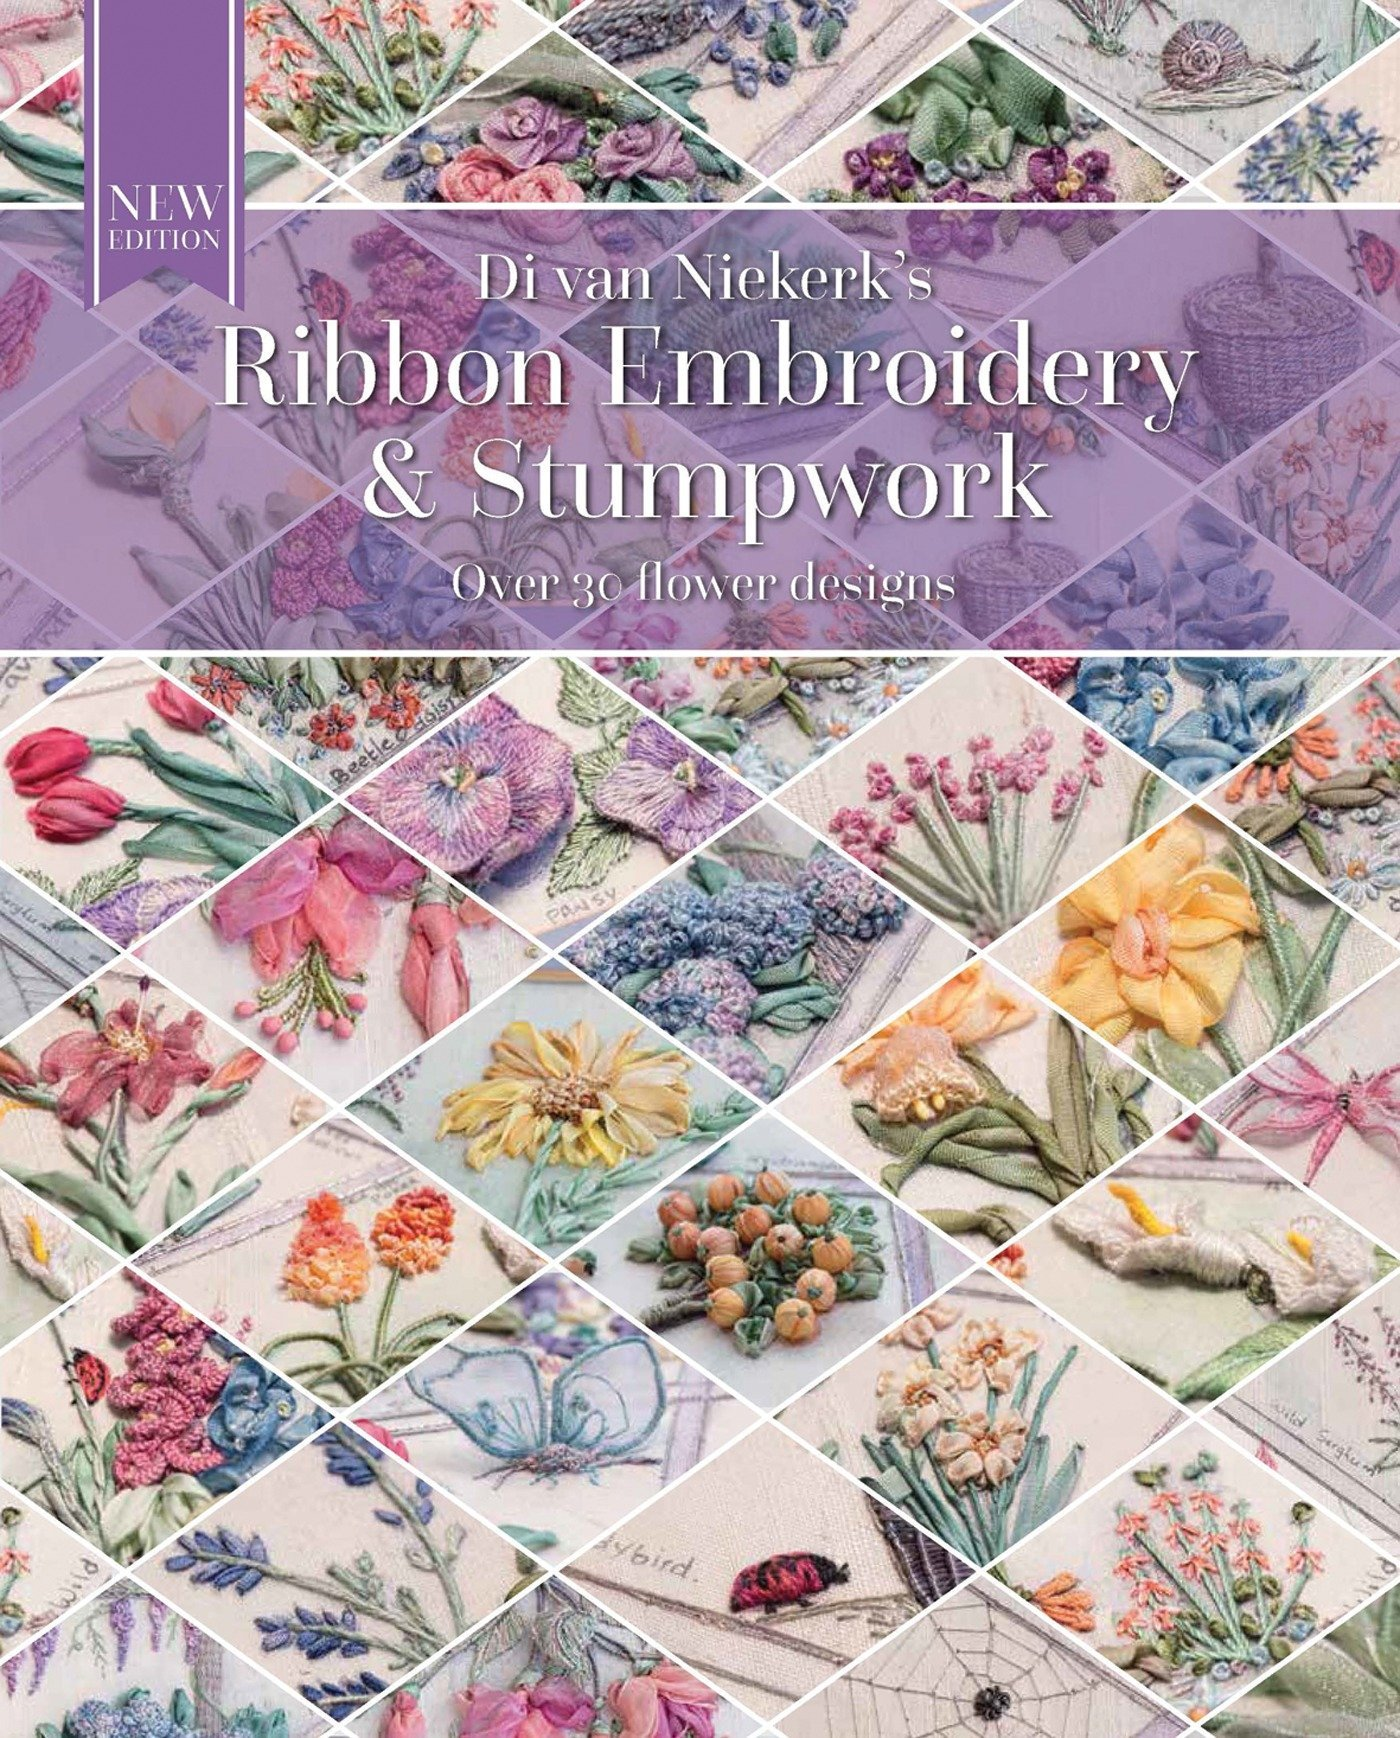 Ribbon Embroidery and Stumpwork: Over 30 flower designs: Di